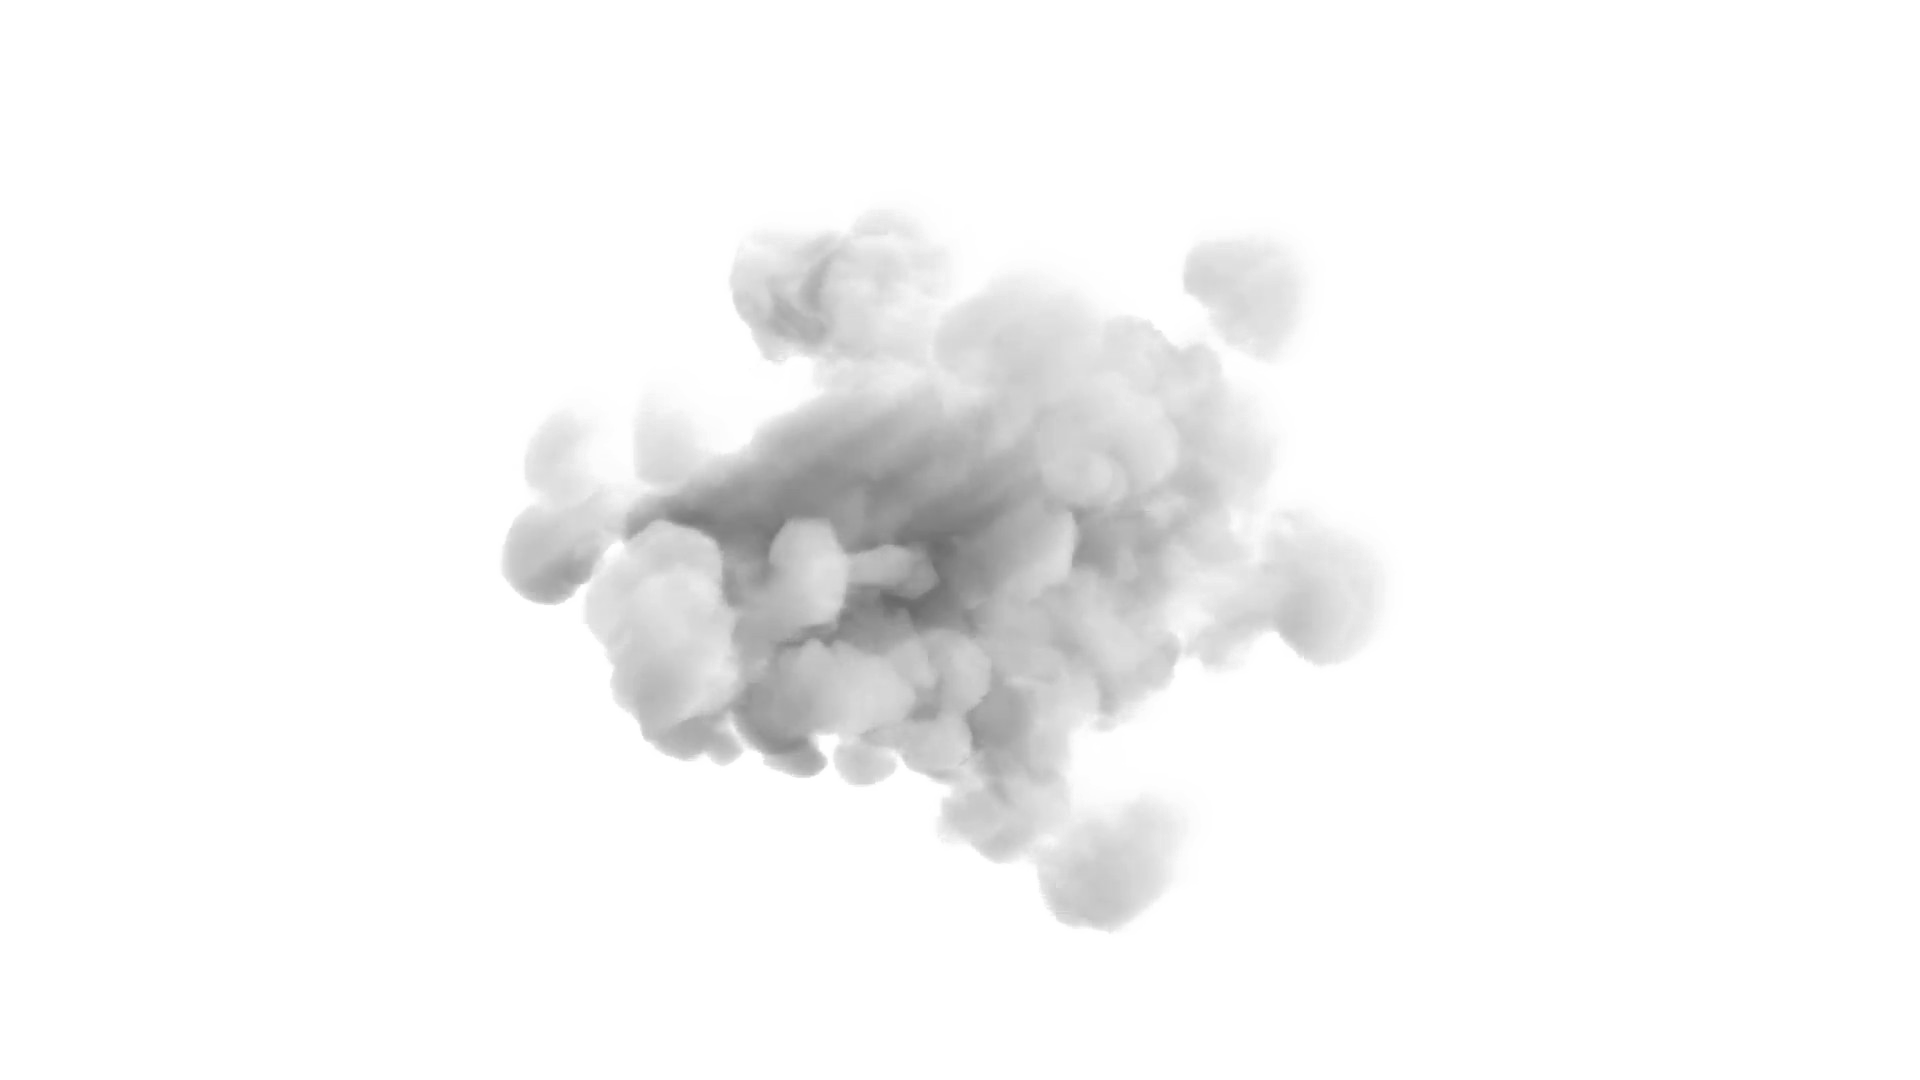 Image free download picture. Jet smoke png vector freeuse stock